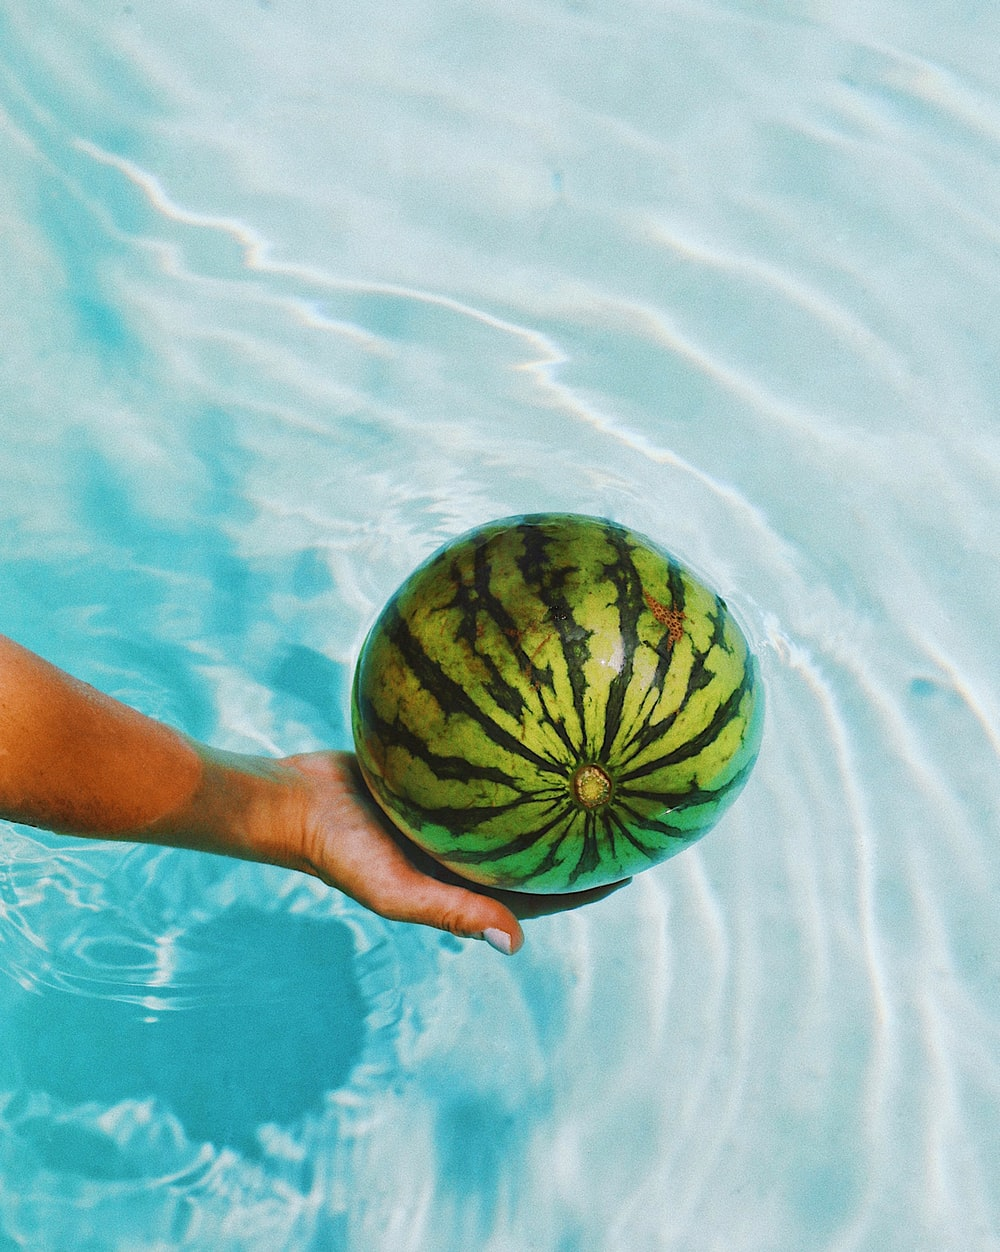 person holding green and brown ball